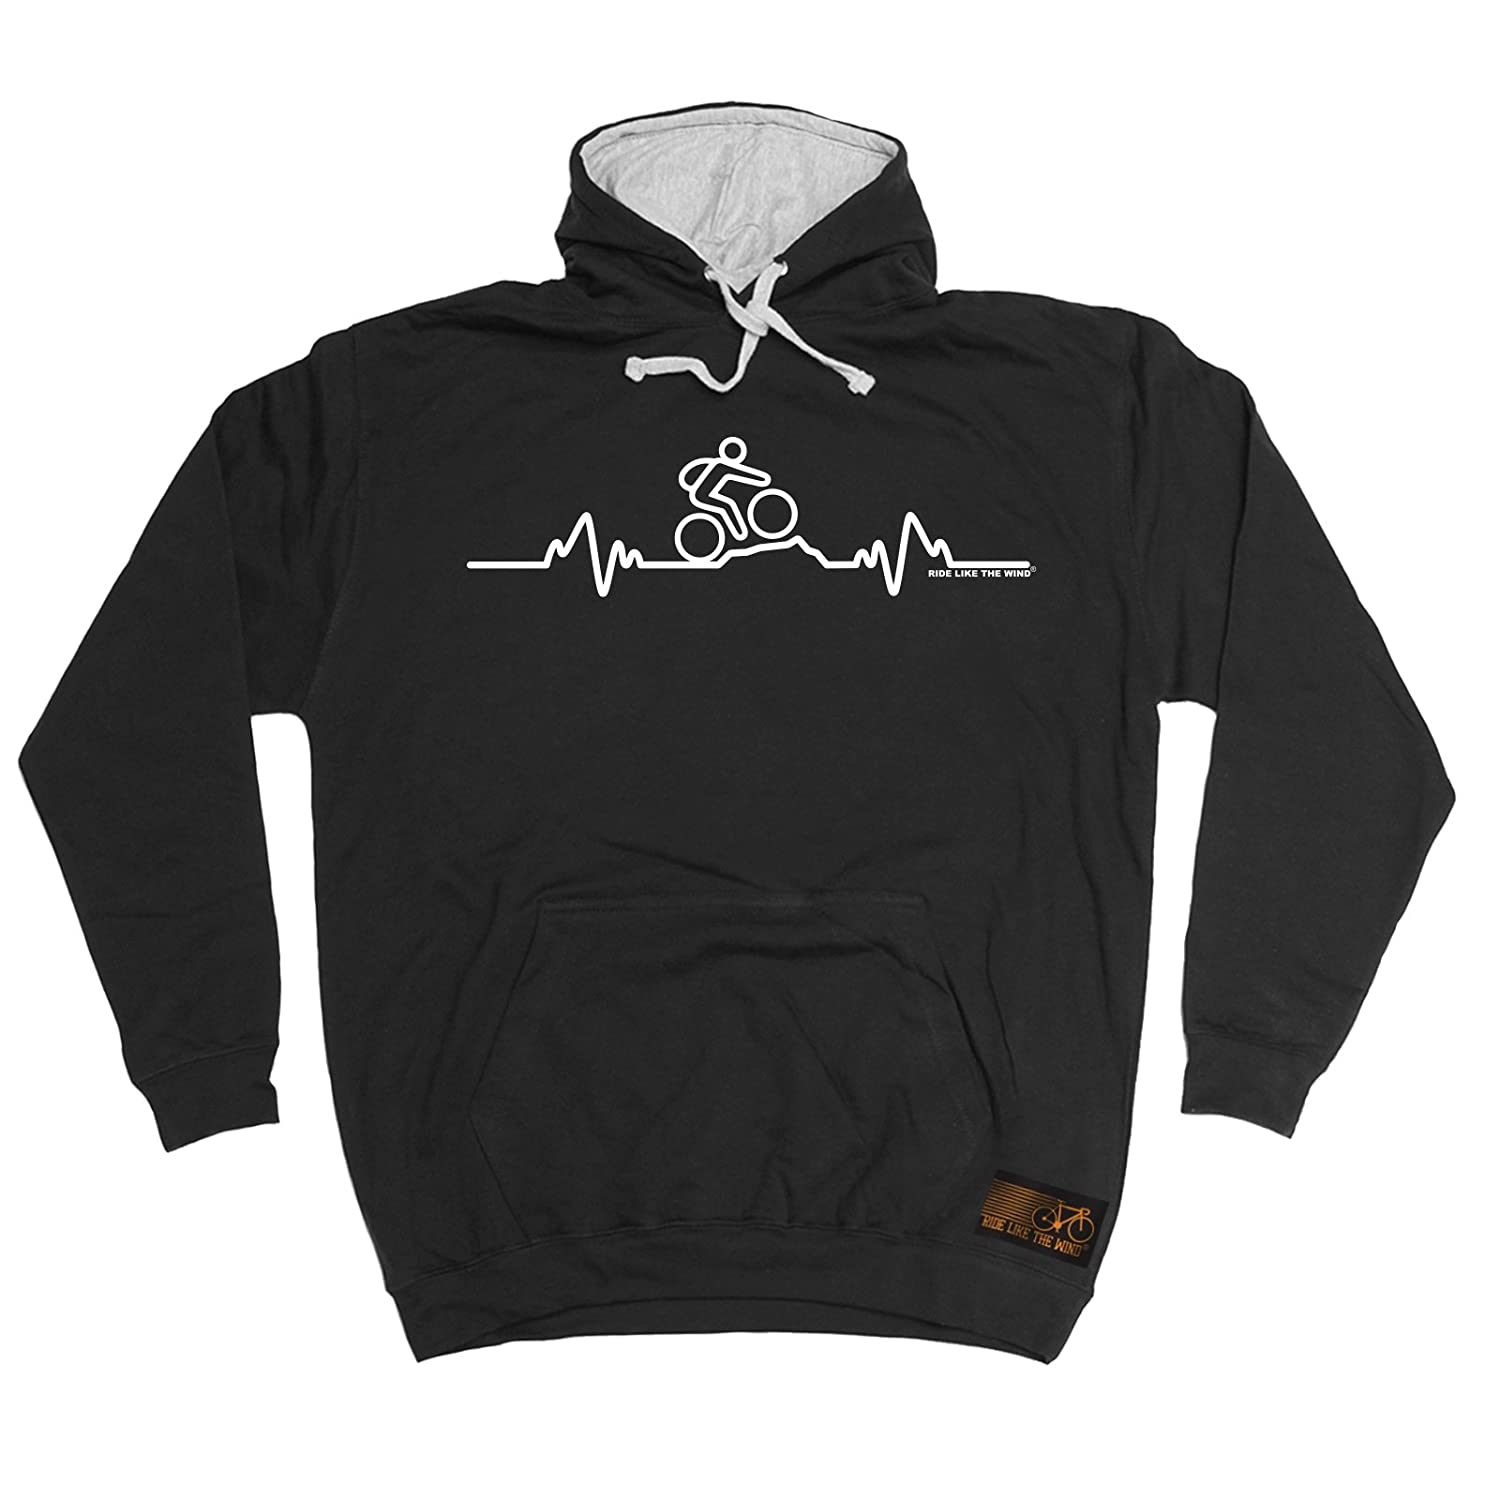 Mountain Bike Pulse - HOODIE / hoody / fashion funny cycling cycle bike top great gift presents accessories for him and her for christmas birthday